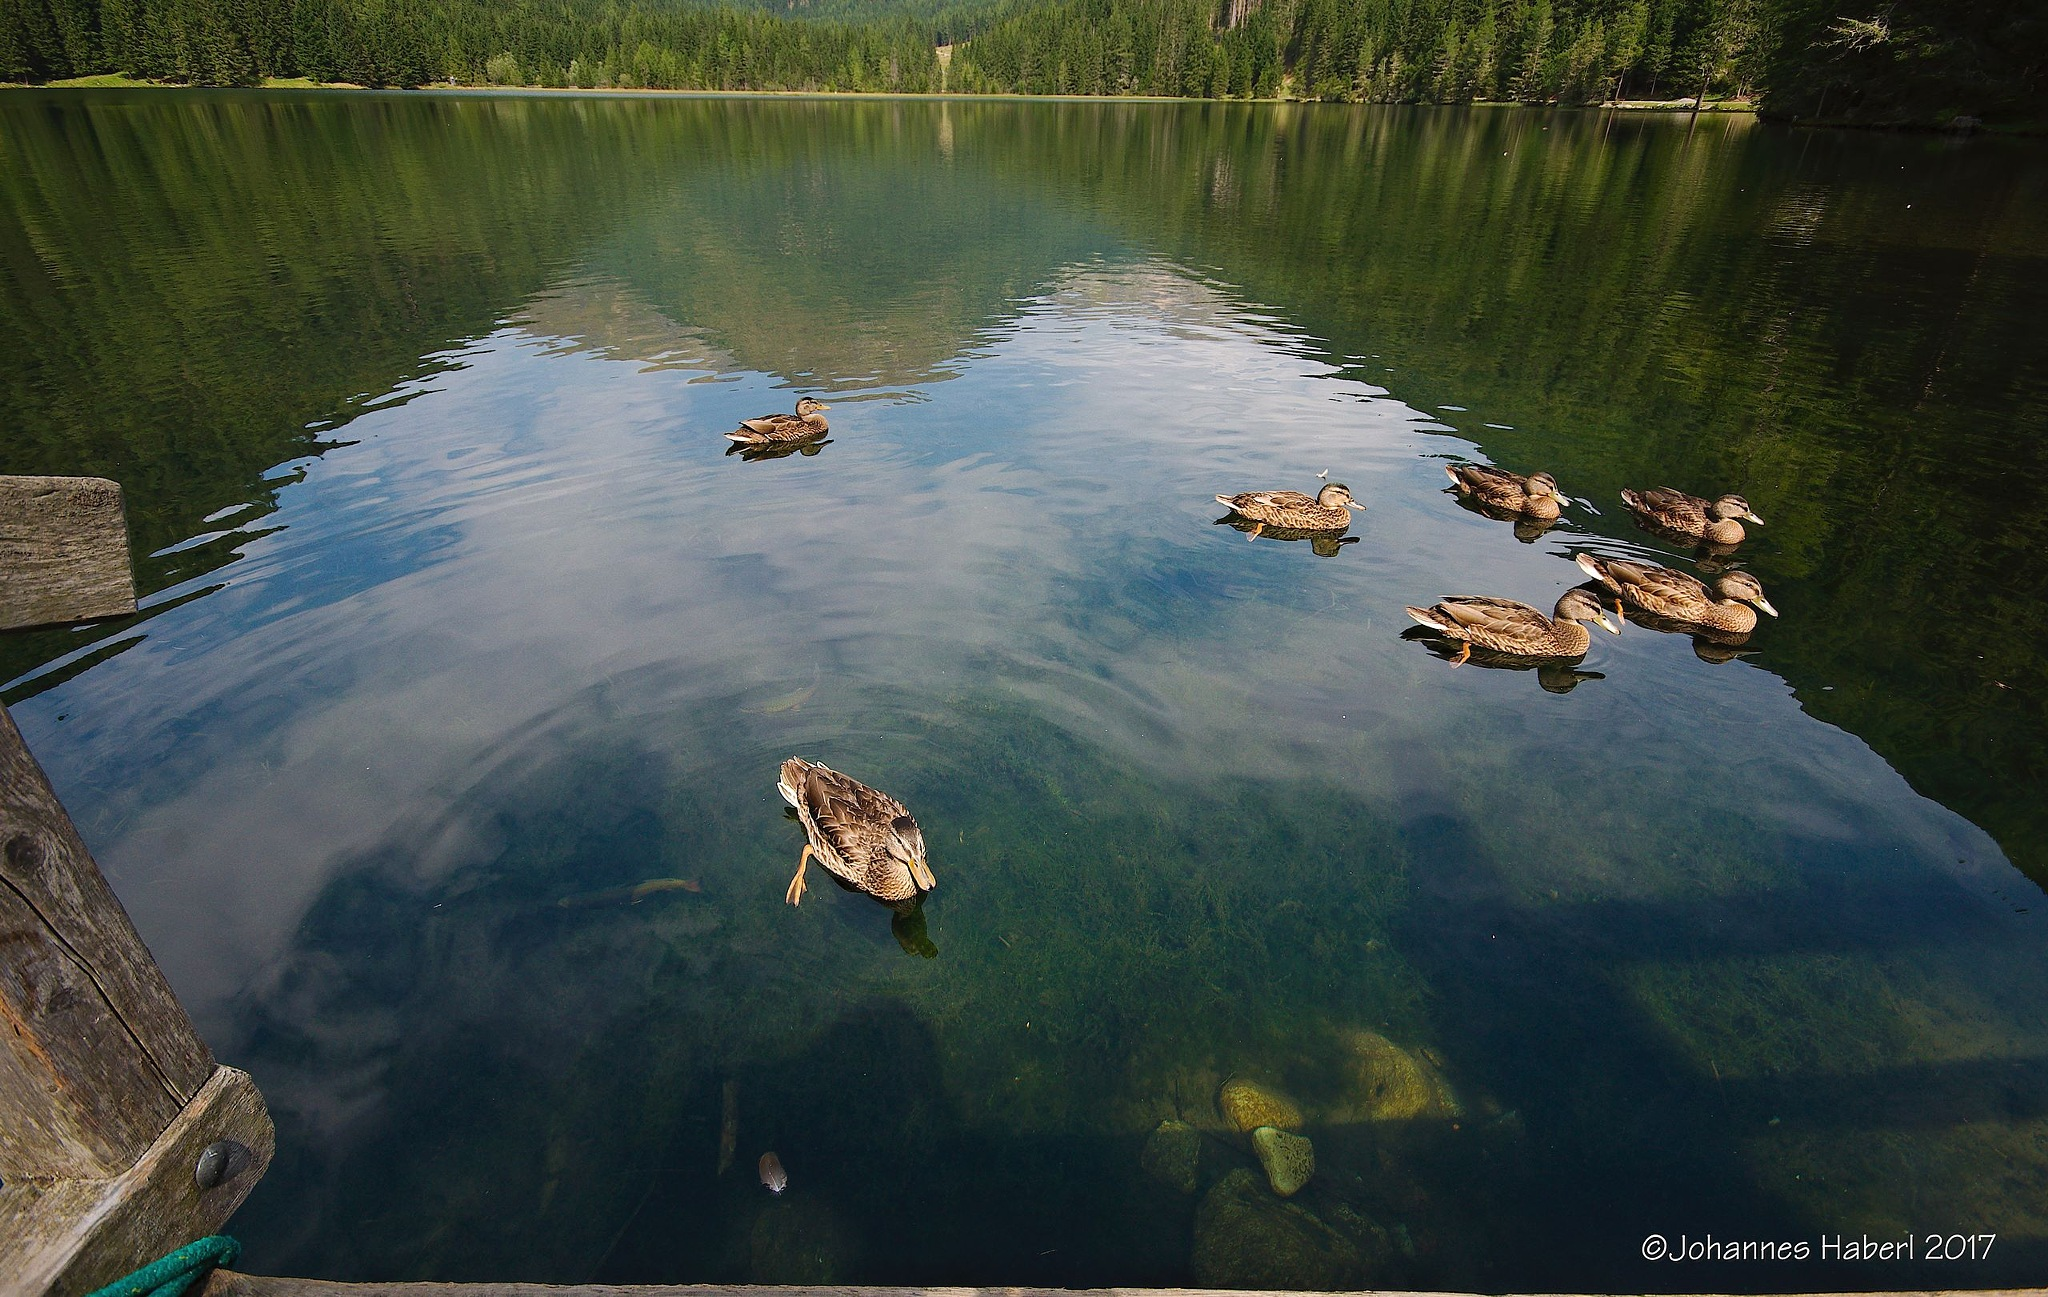 ducks - Etrachsee by Johannes Haberl